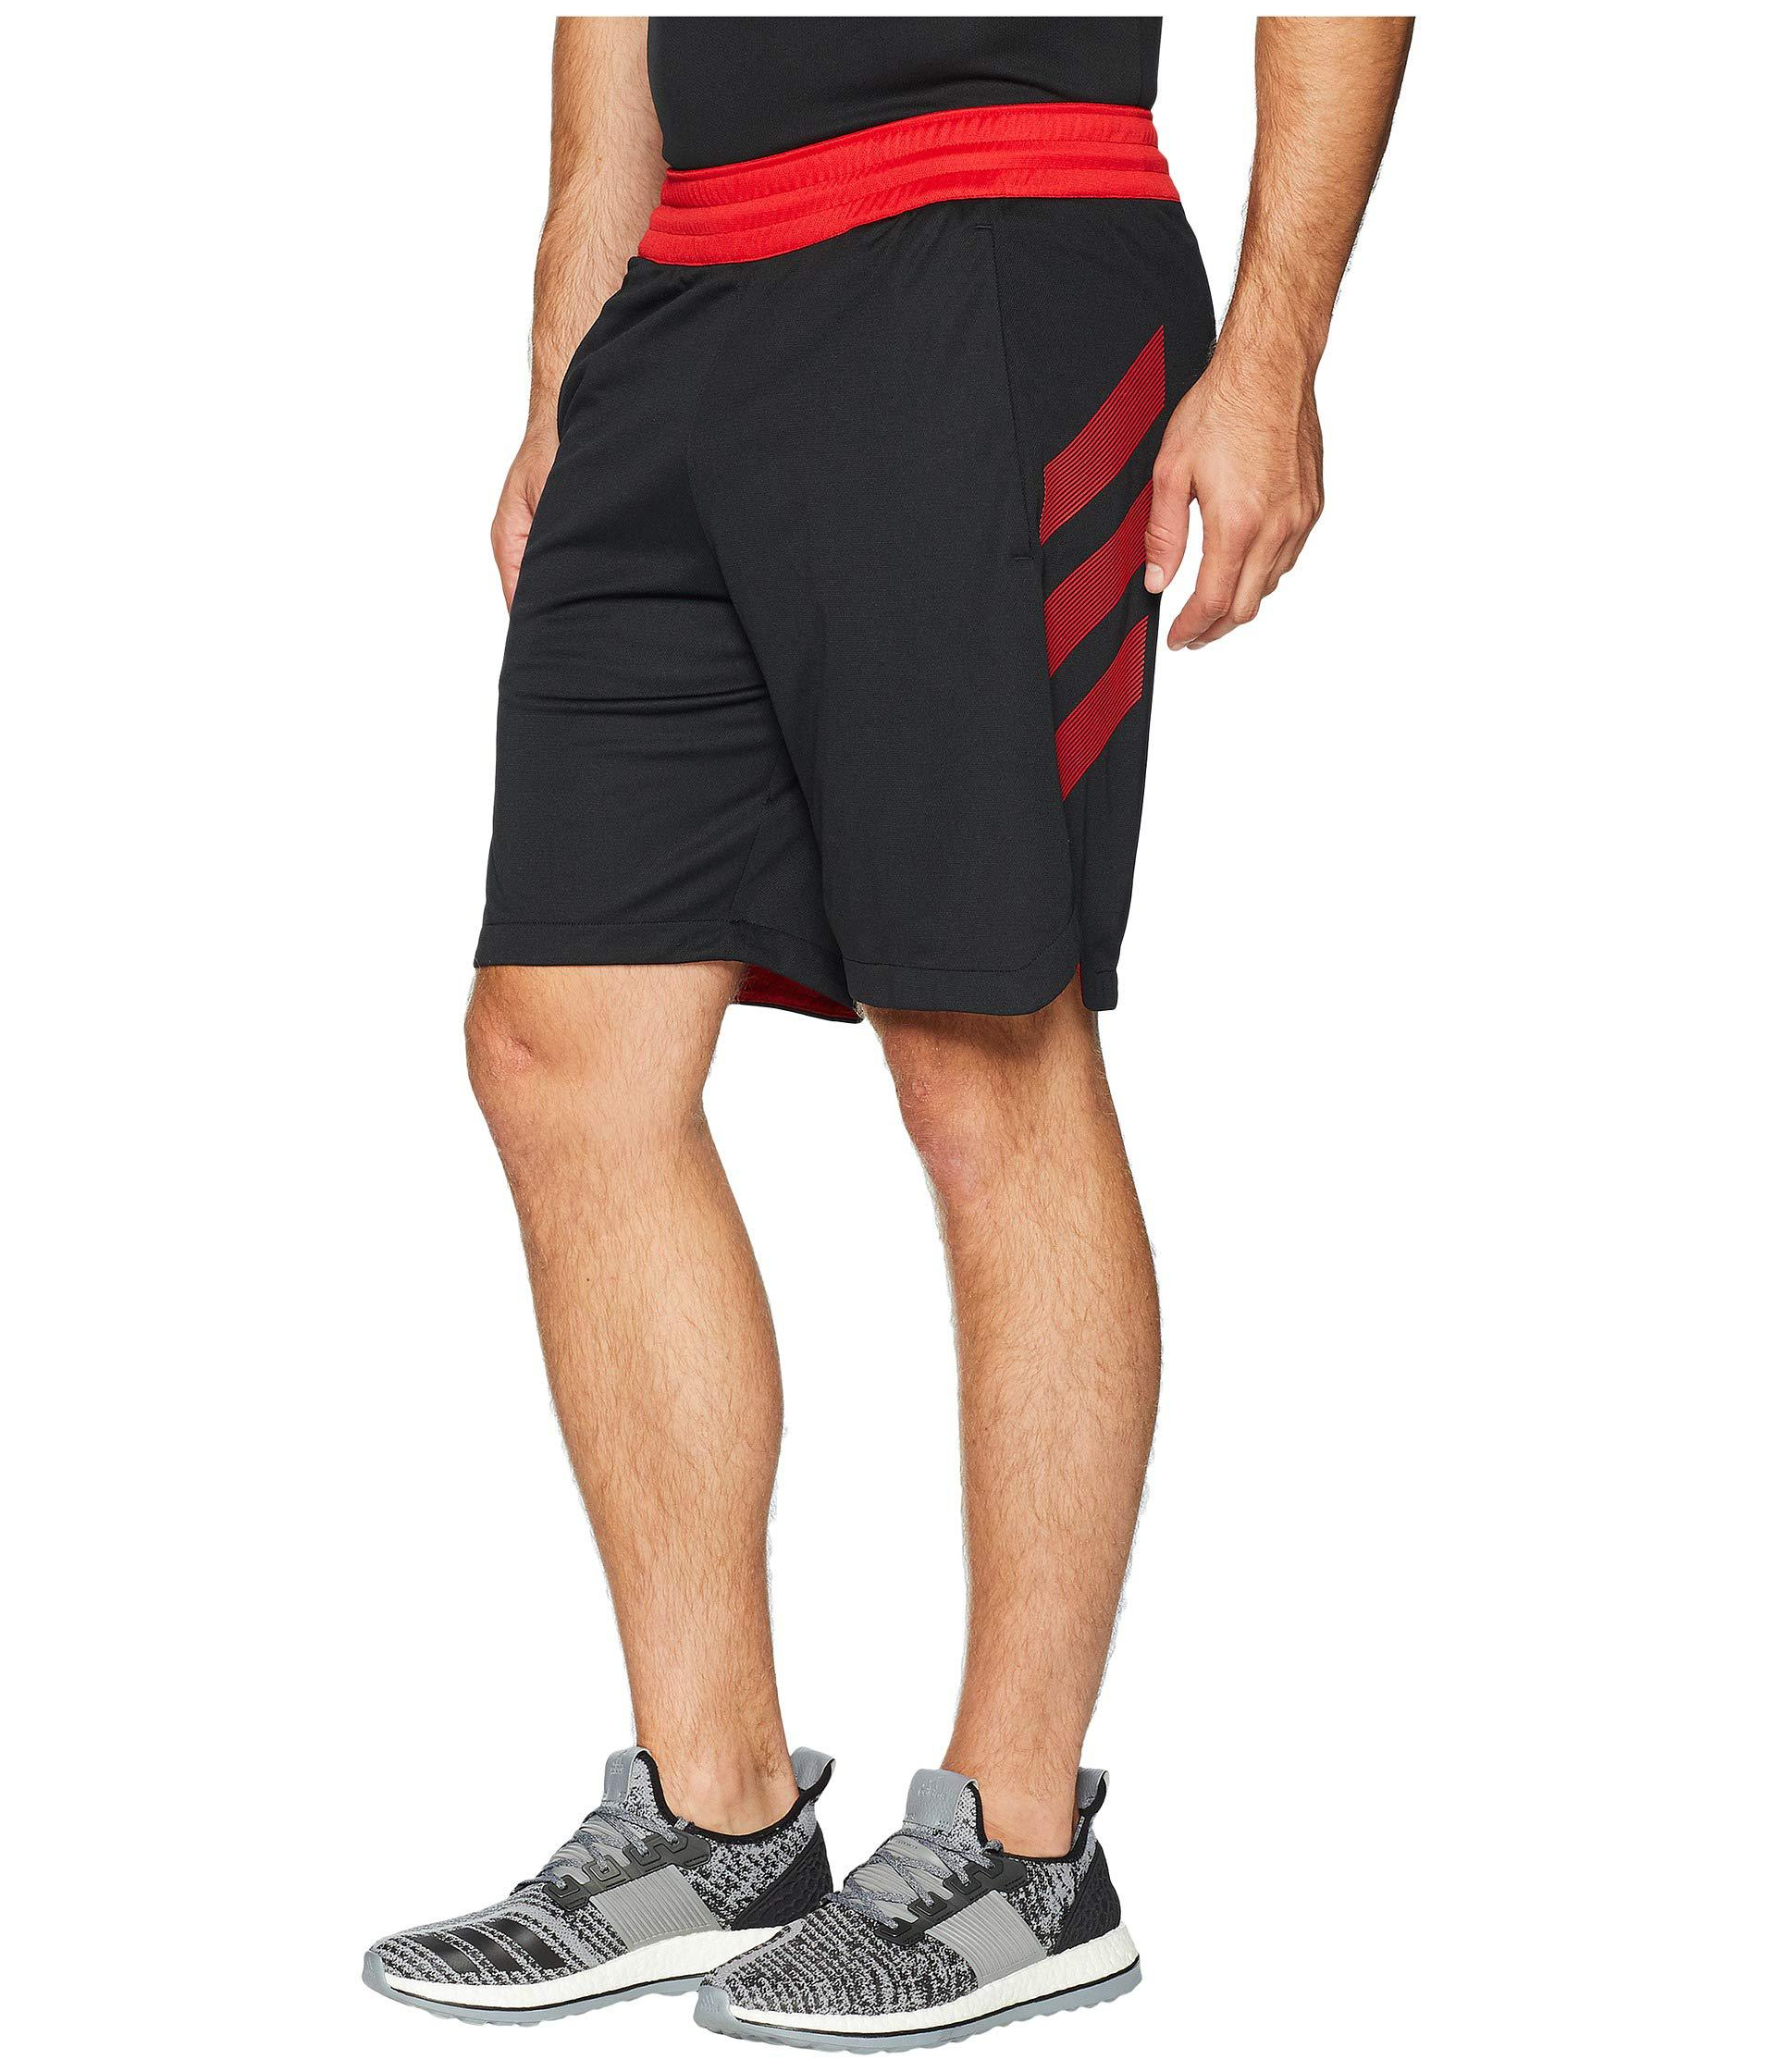 5604f4893739 Lyst - adidas Accelerate 3-stripes Shorts in Black for Men